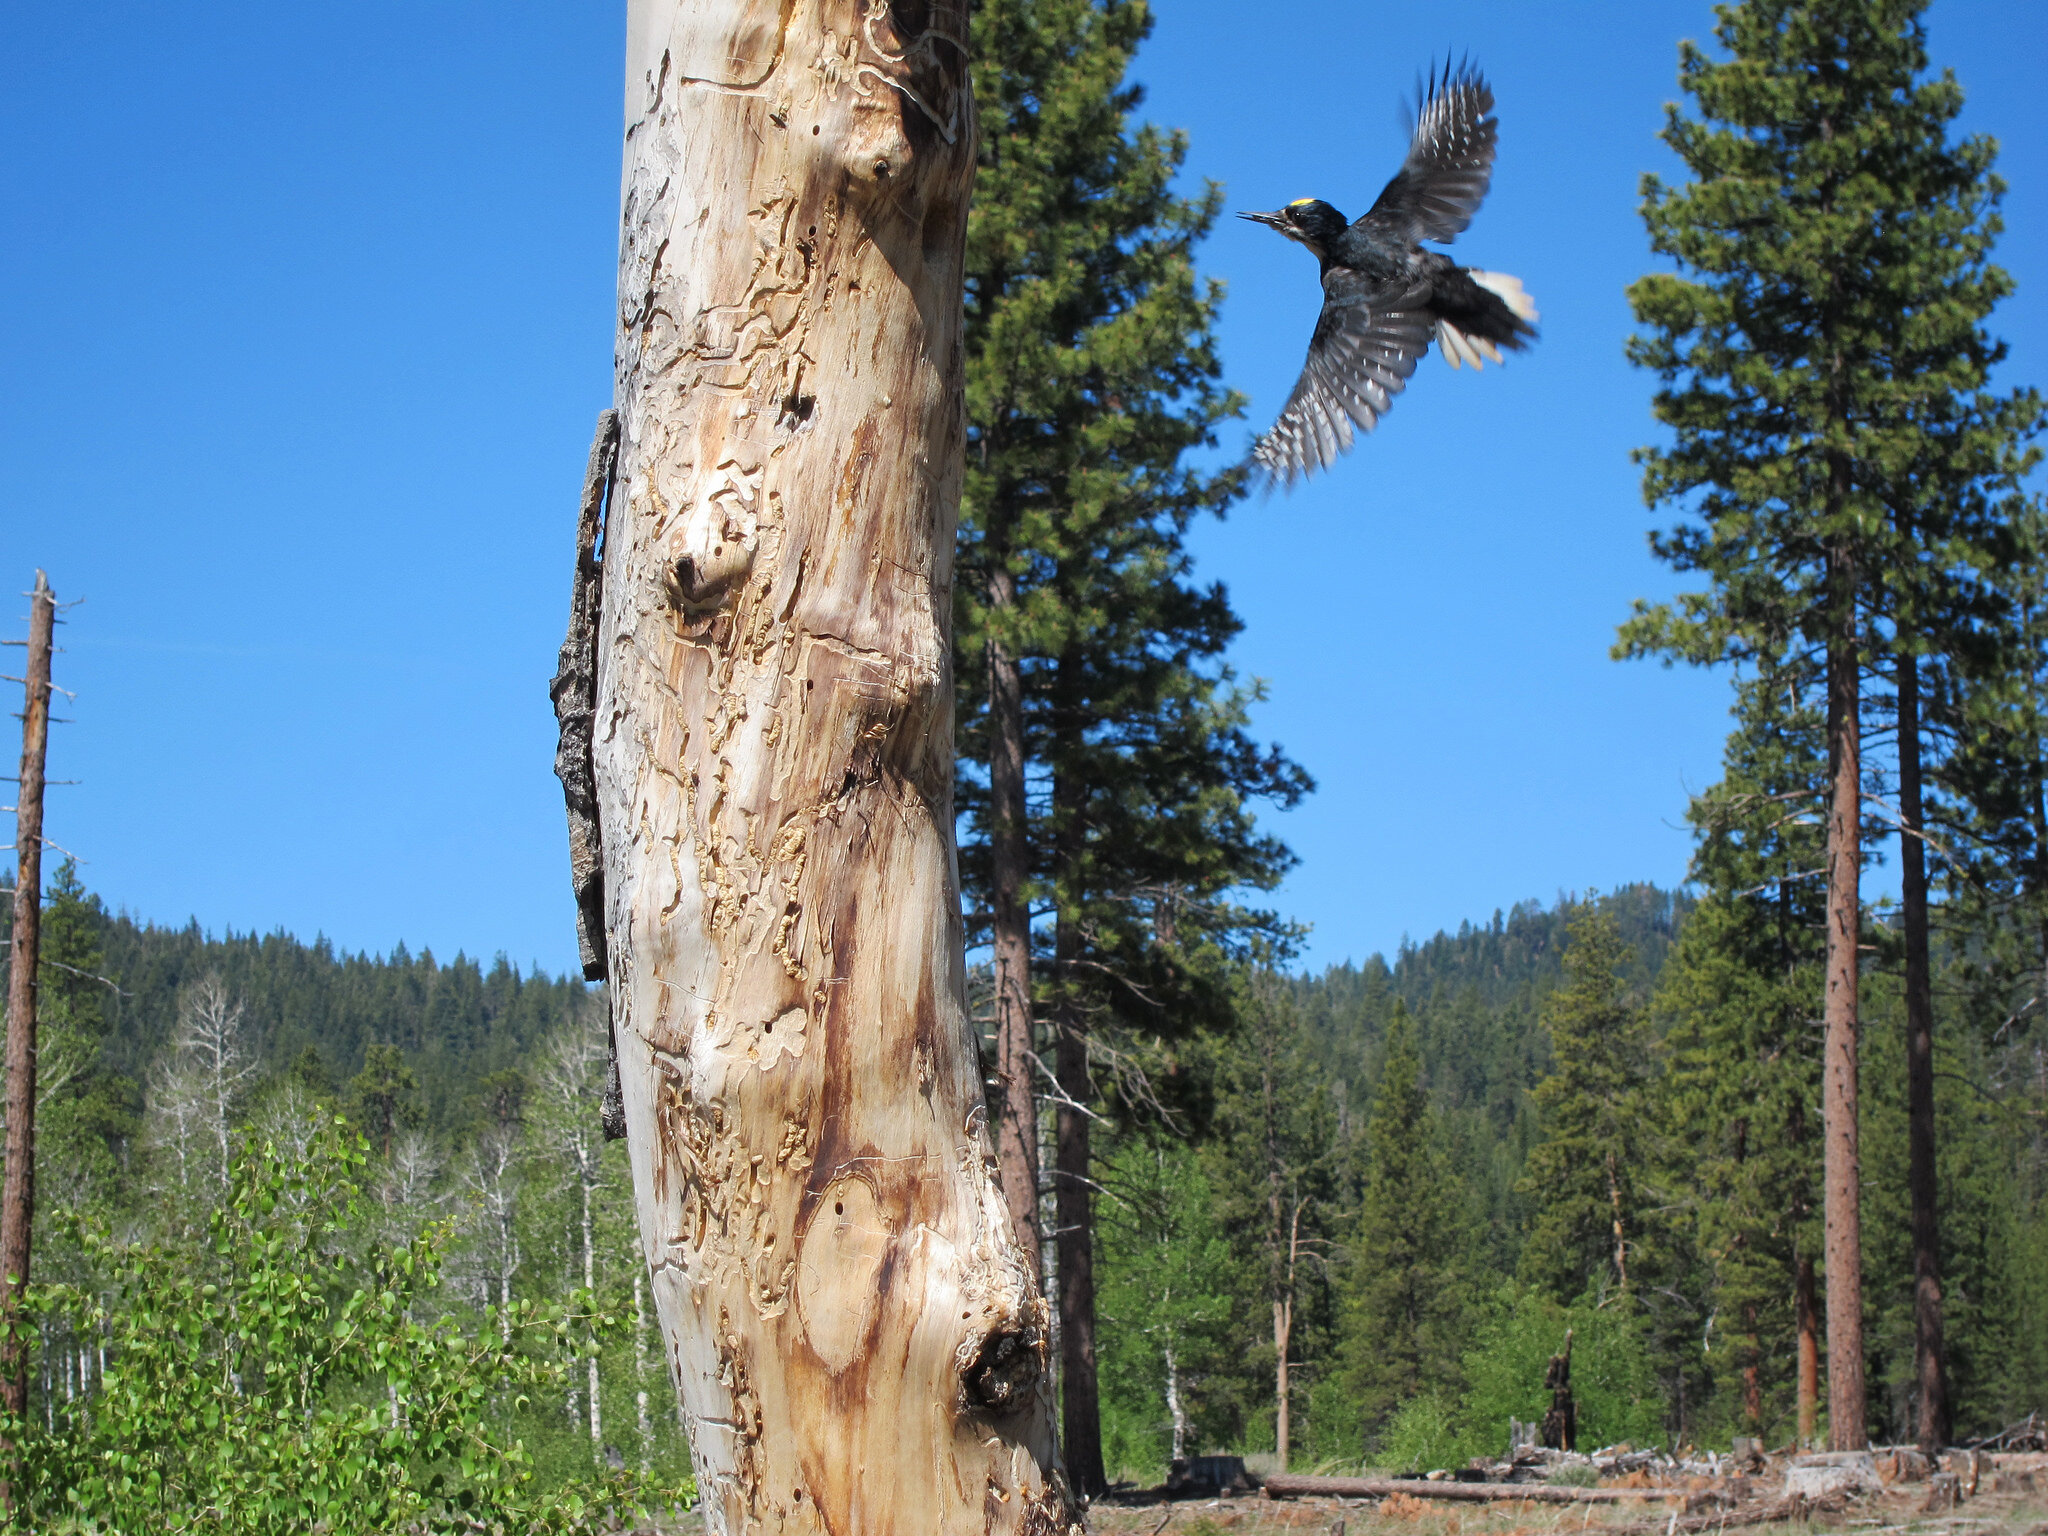 Recent drought may provide a glimpse of the future for birds in the Sierra Nevada